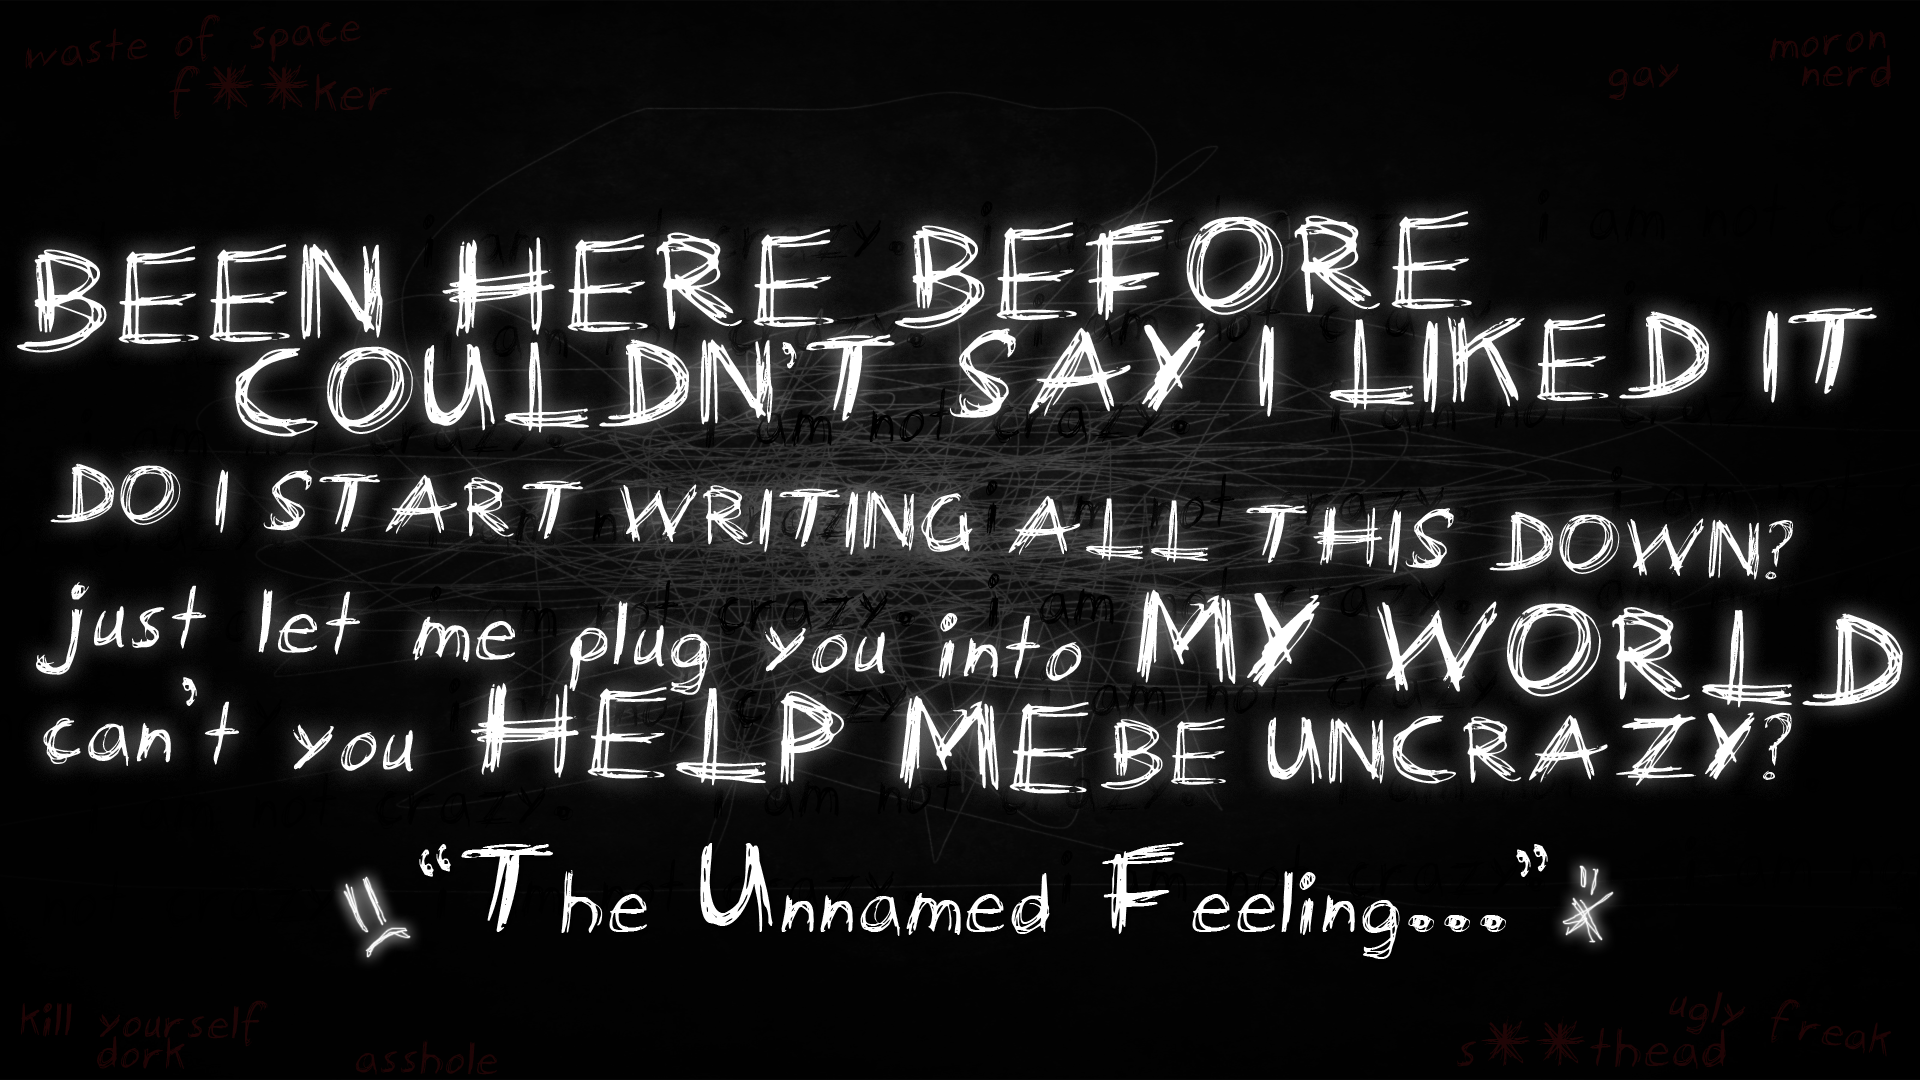 musica the unnamed feeling